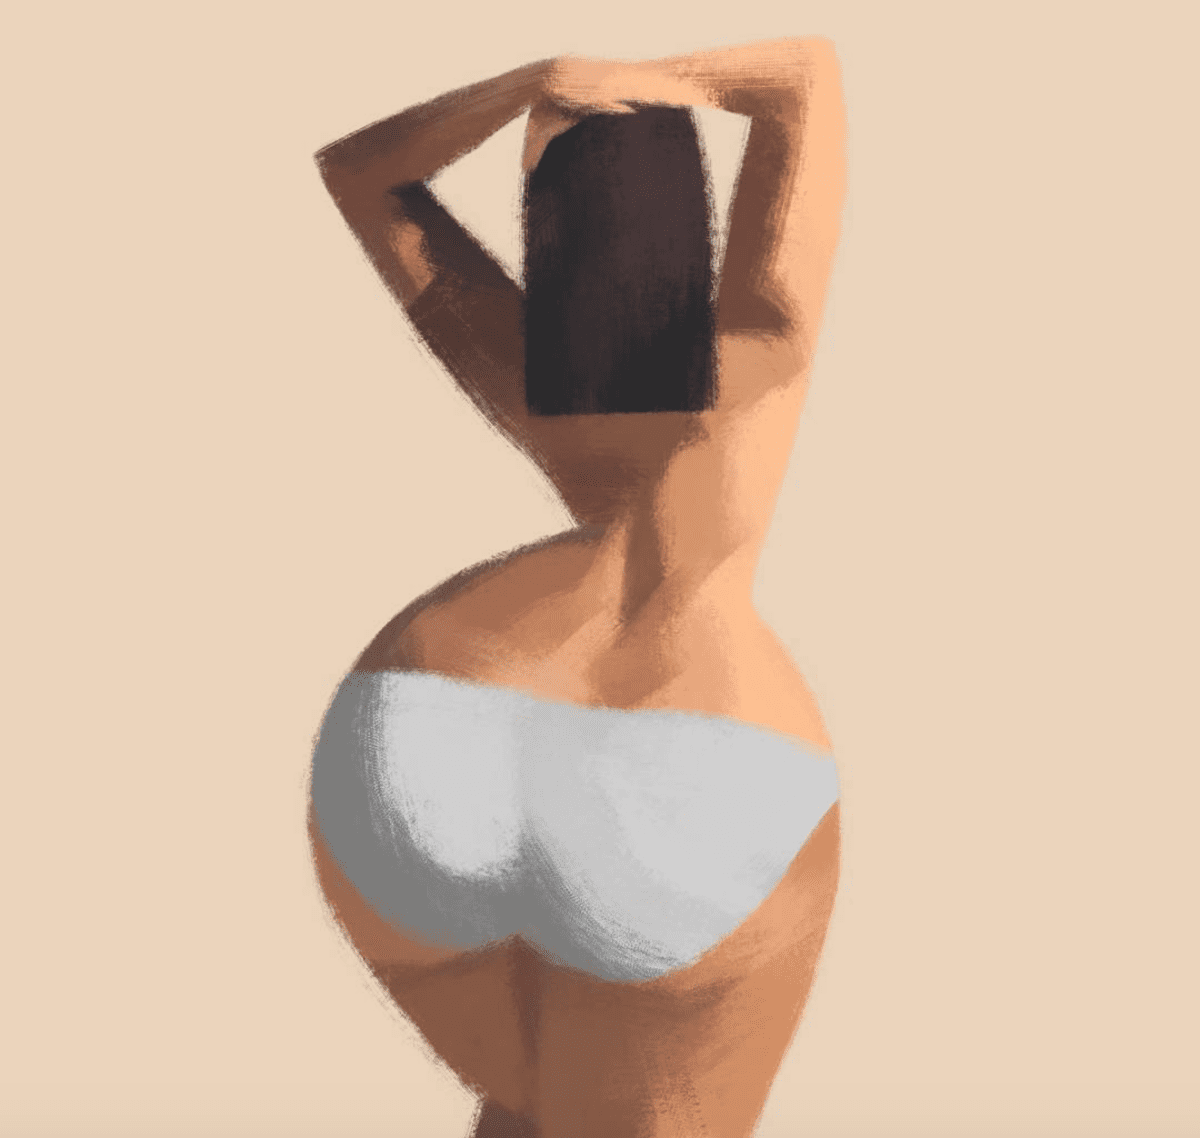 Plus Size Art: Check Out This Beautiful Body-Positive Art By Pierre Rütz!